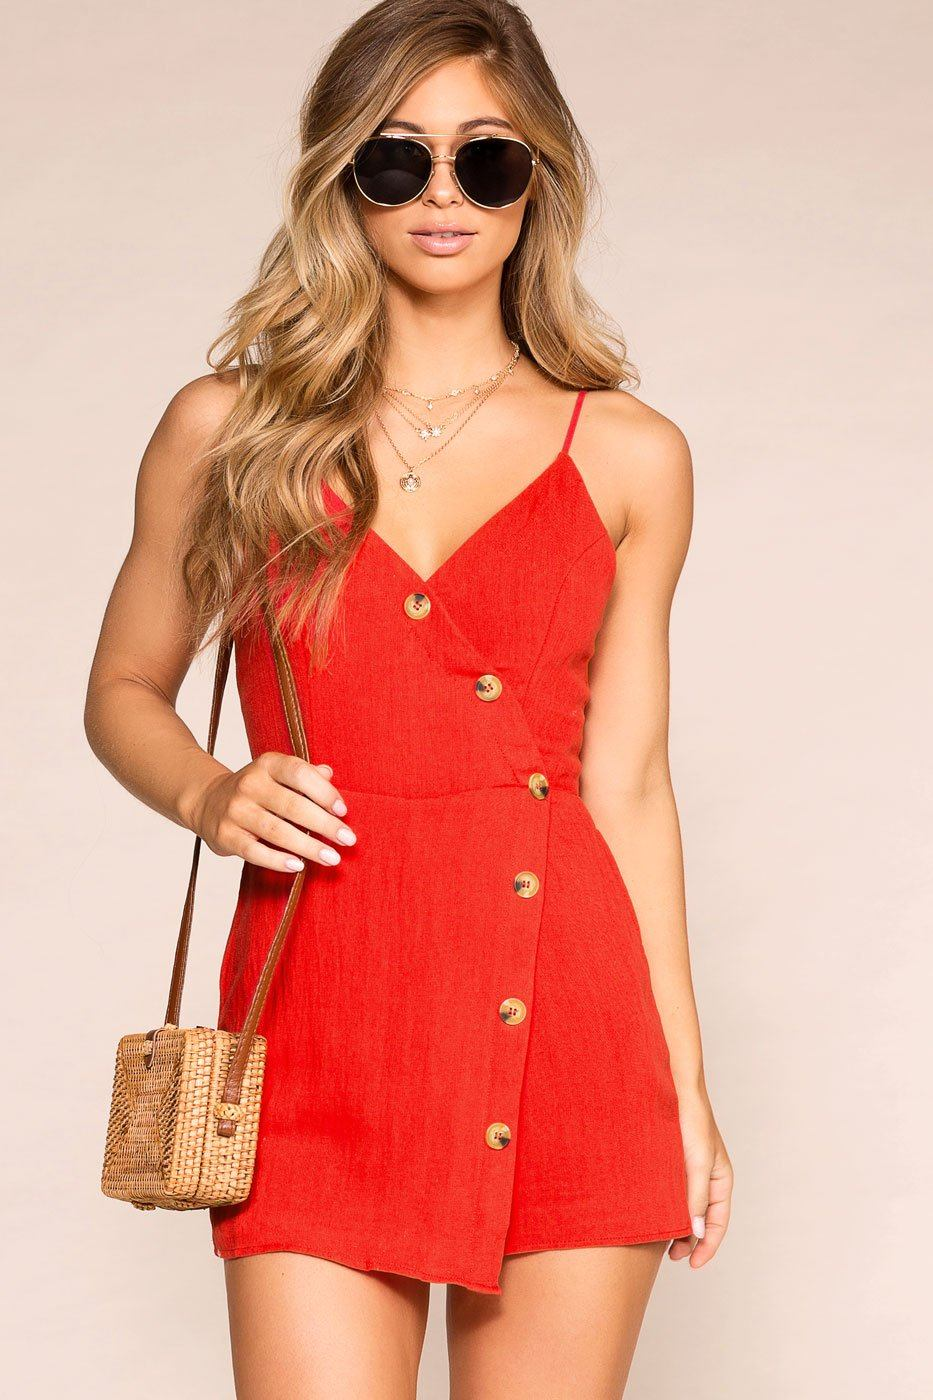 cad1d8b02af Adrienne Red Buttoned Romper